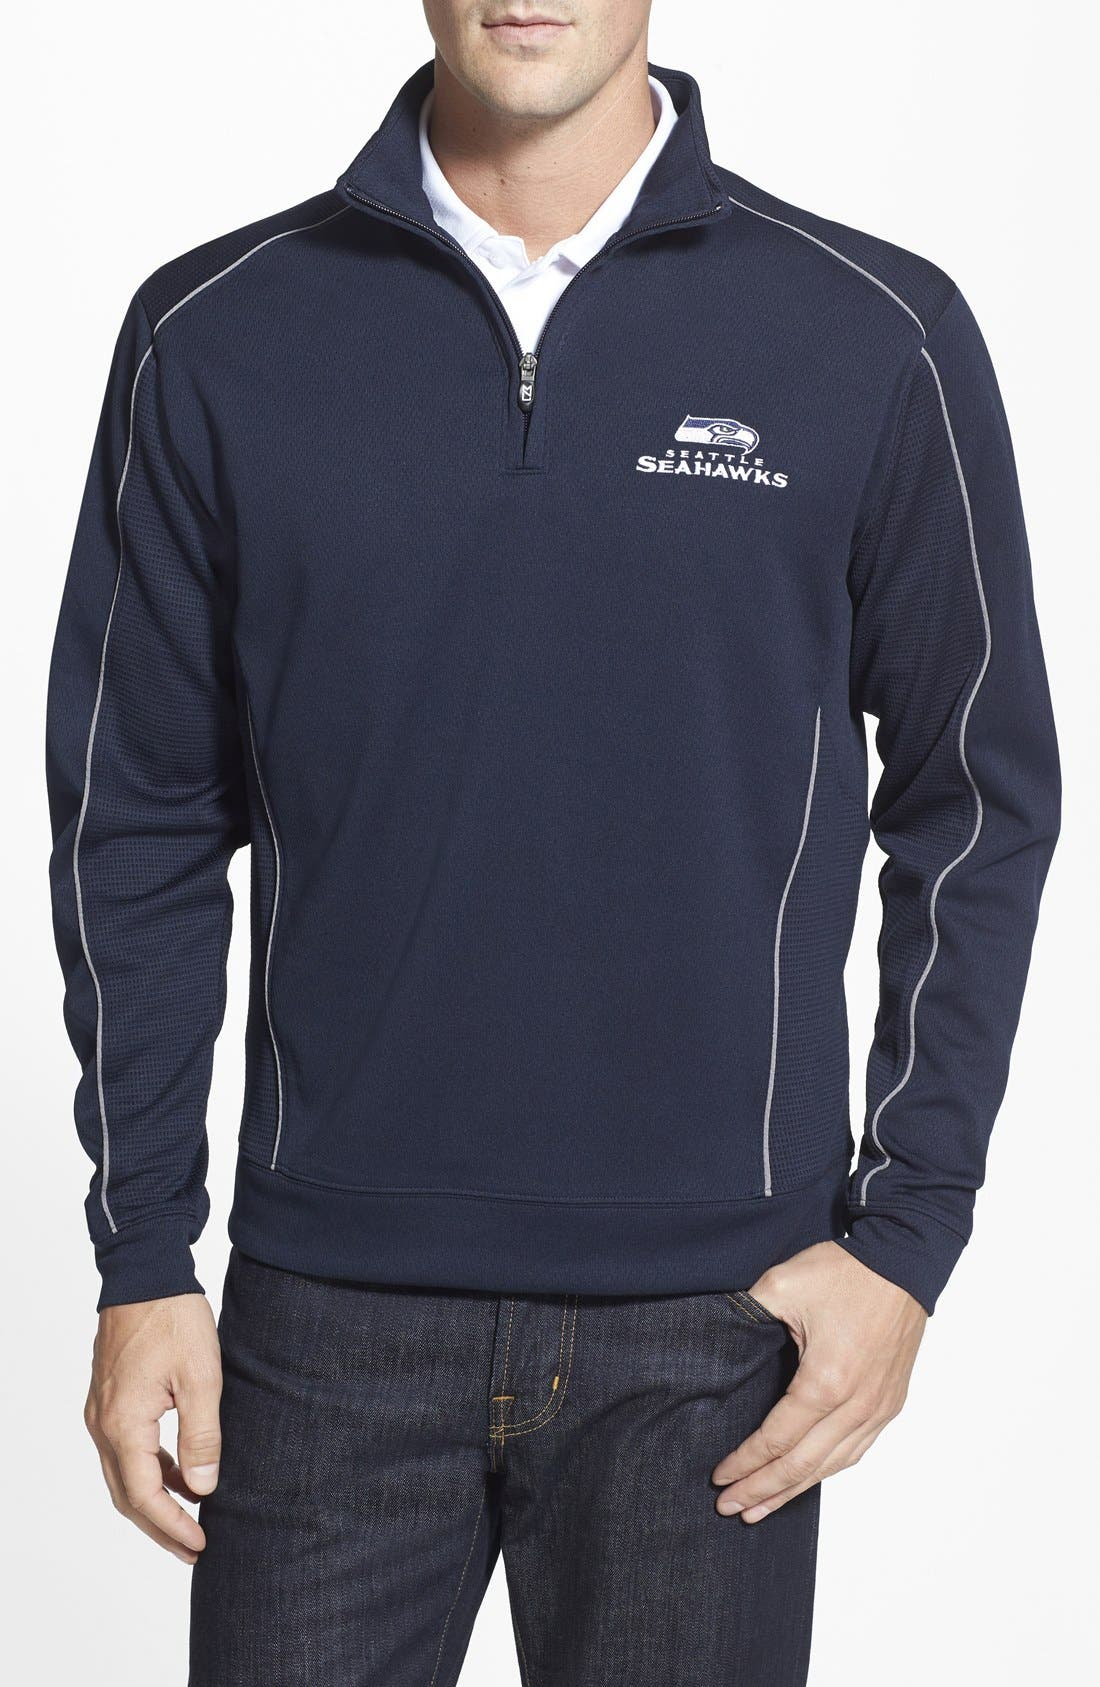 Seattle Seahawks - Edge DryTec Moisture Wicking Half Zip Pullover,                             Main thumbnail 1, color,                             Navy Blue